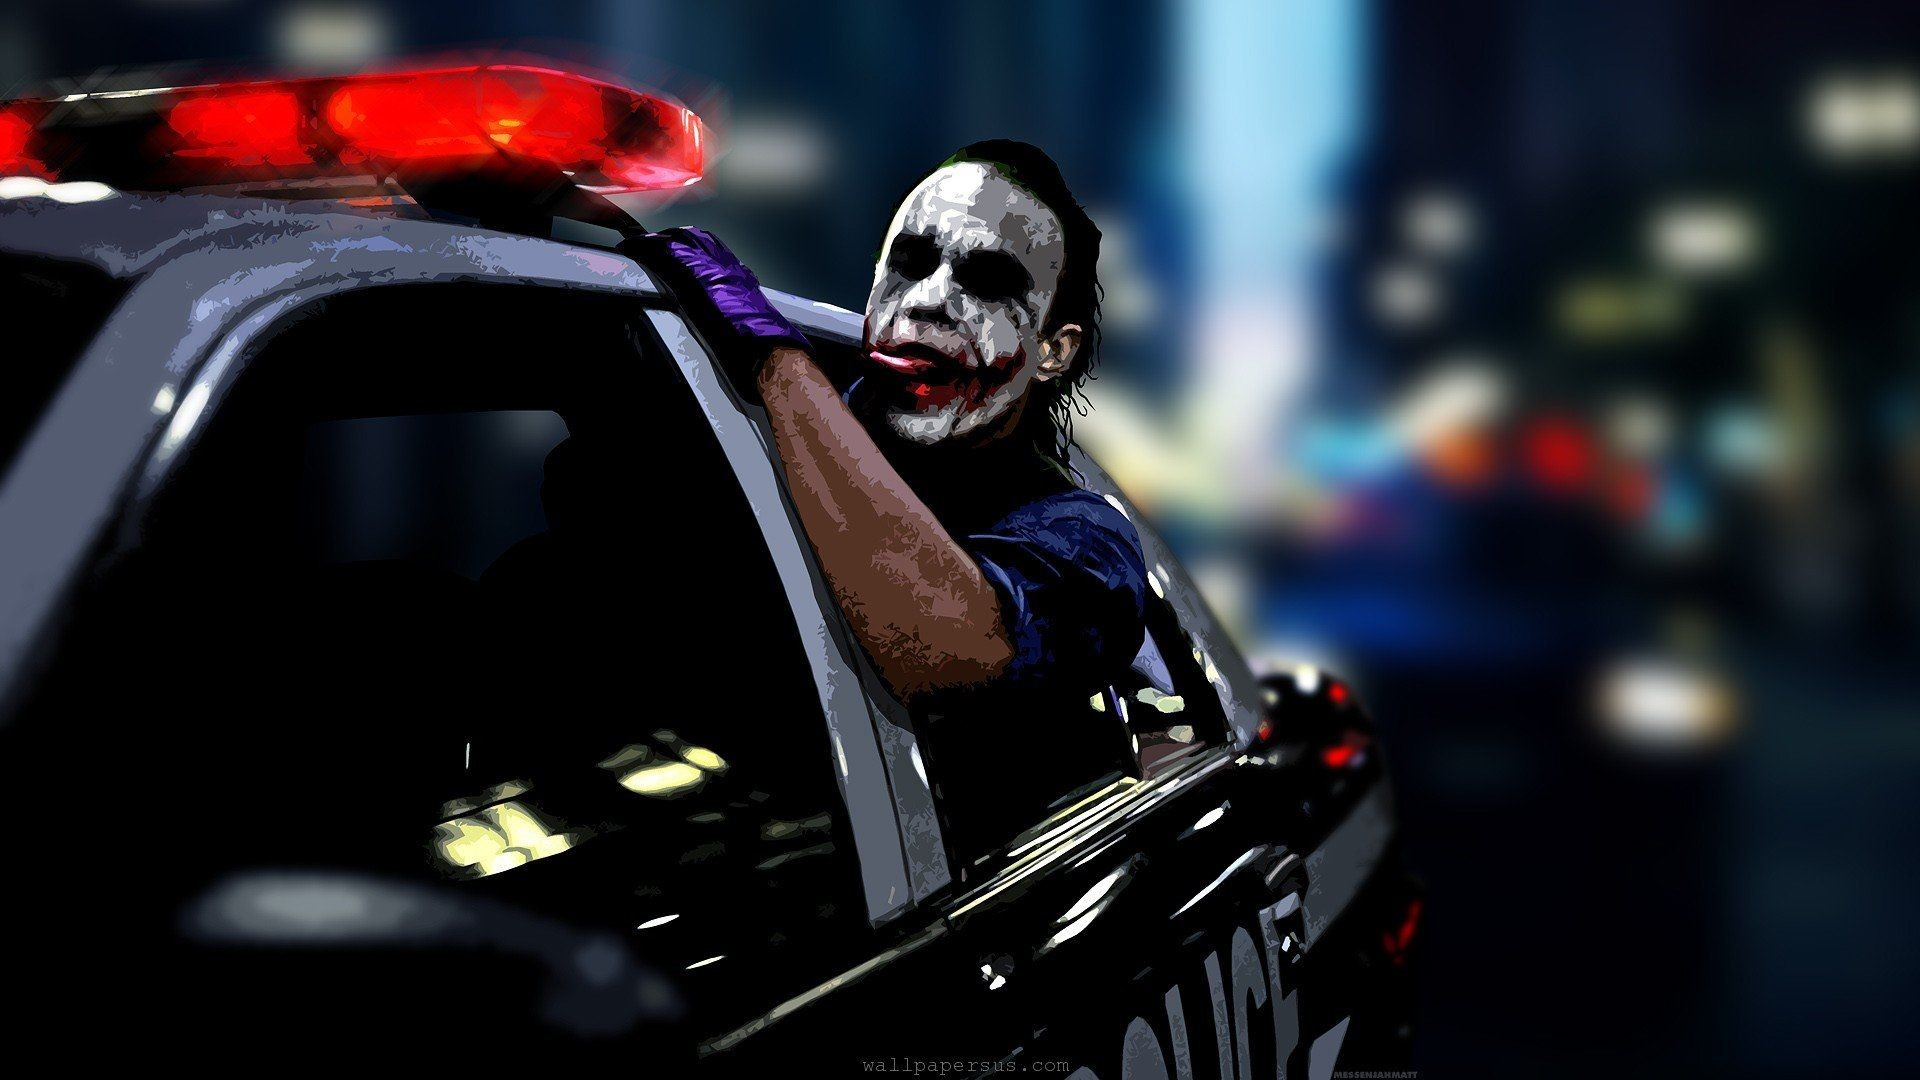 Res: 1920x1080, Joker Police Car Wallpaper